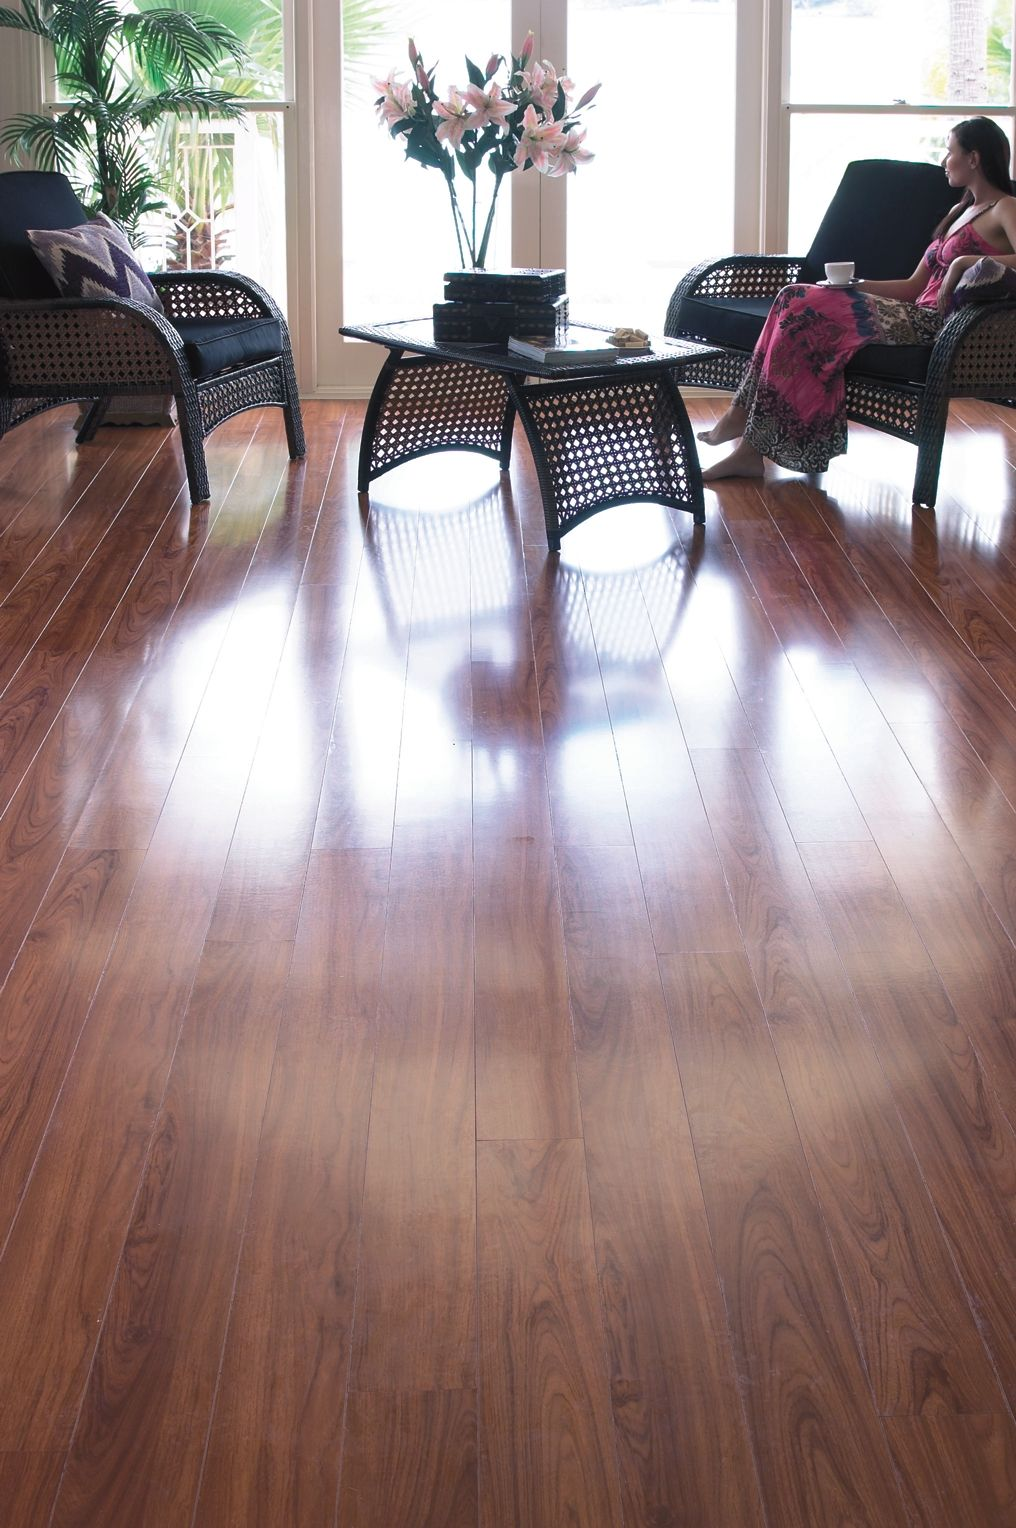 Timber Impressions African Cherry Laminate Flooring Combines Realistic Print Technology With A High Gloss Piano Finish To Afford You With Laminate Flooring Flooring Concrete Wood